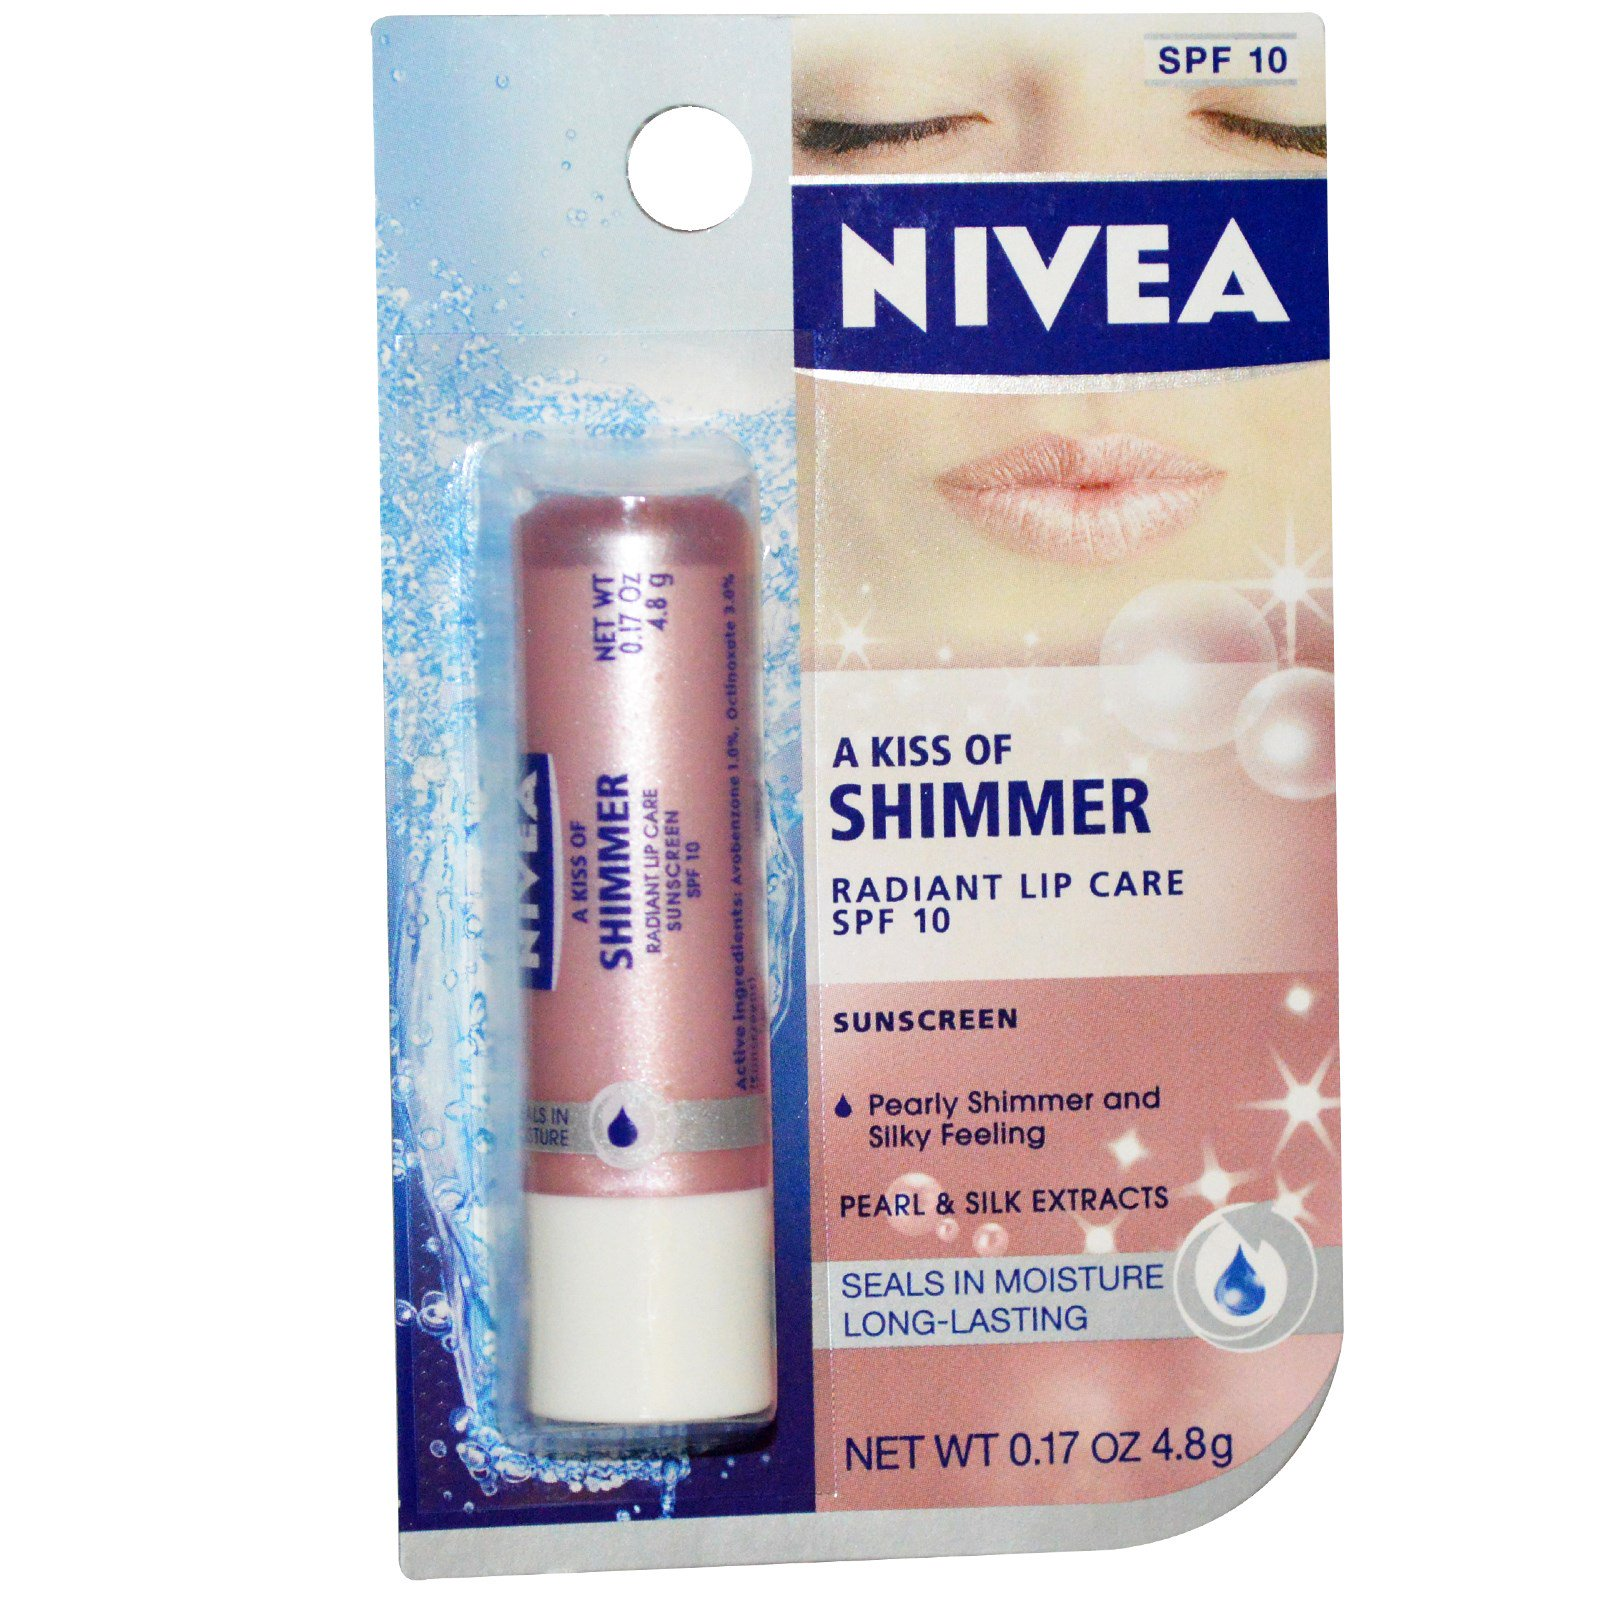 NIVEA A Kiss of Shimmer Radiant Lip Care 0.17 oz (Pack of 3) Christian Dior - Hydra Life Pro-Youth Silk Creme (Normal to Dry Skin) -50ml/1.7oz